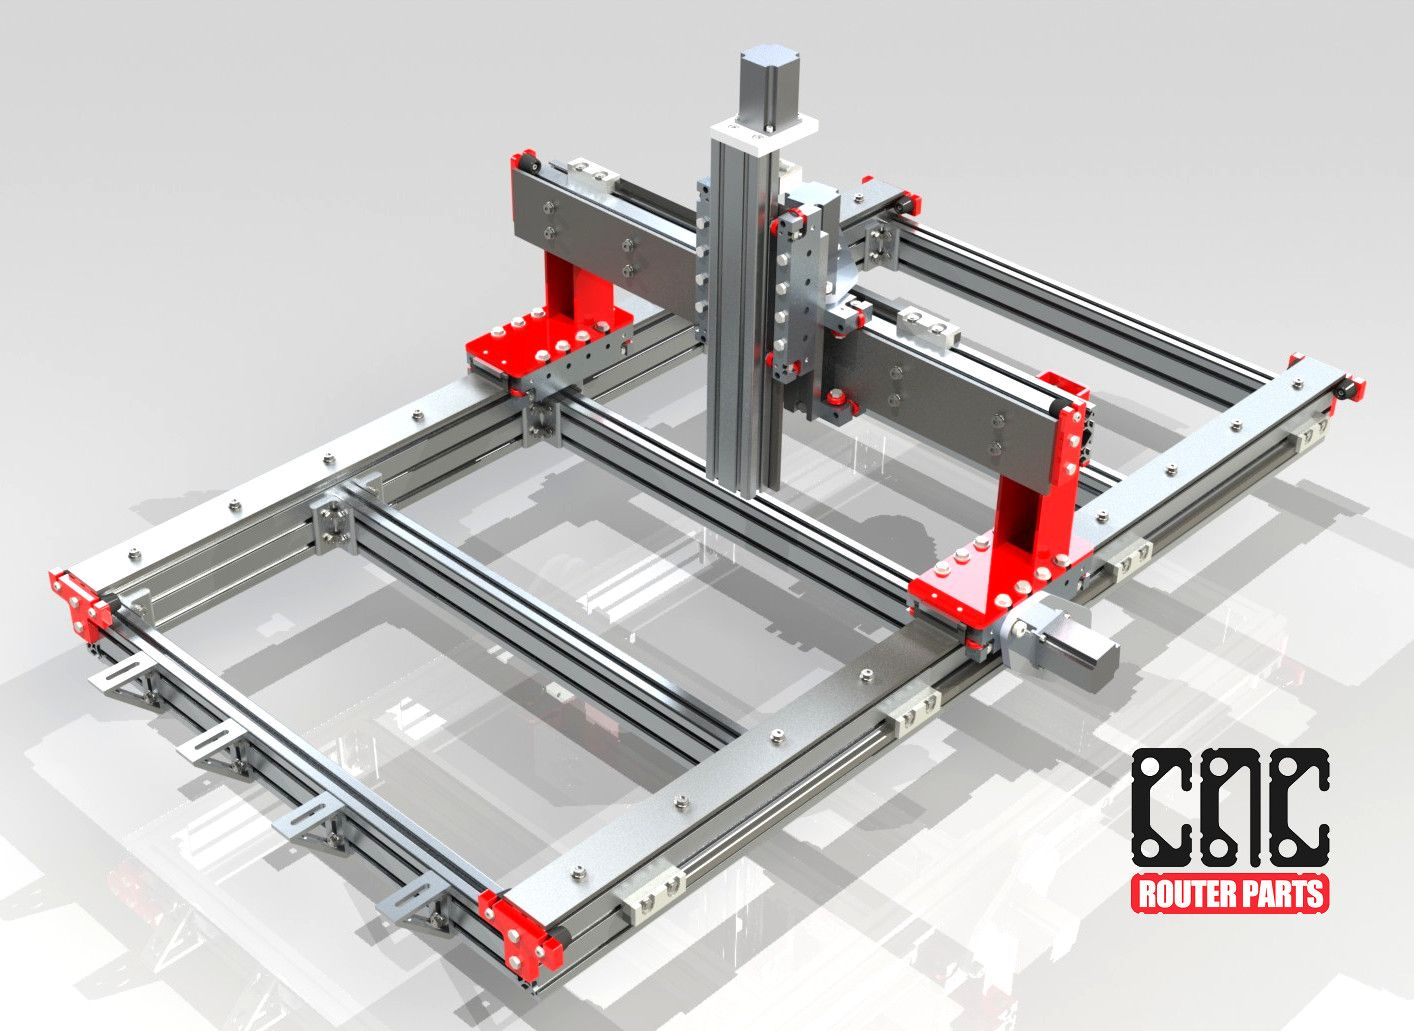 CRP2448 2' x 4' CNC Router Kit. to CNC Router